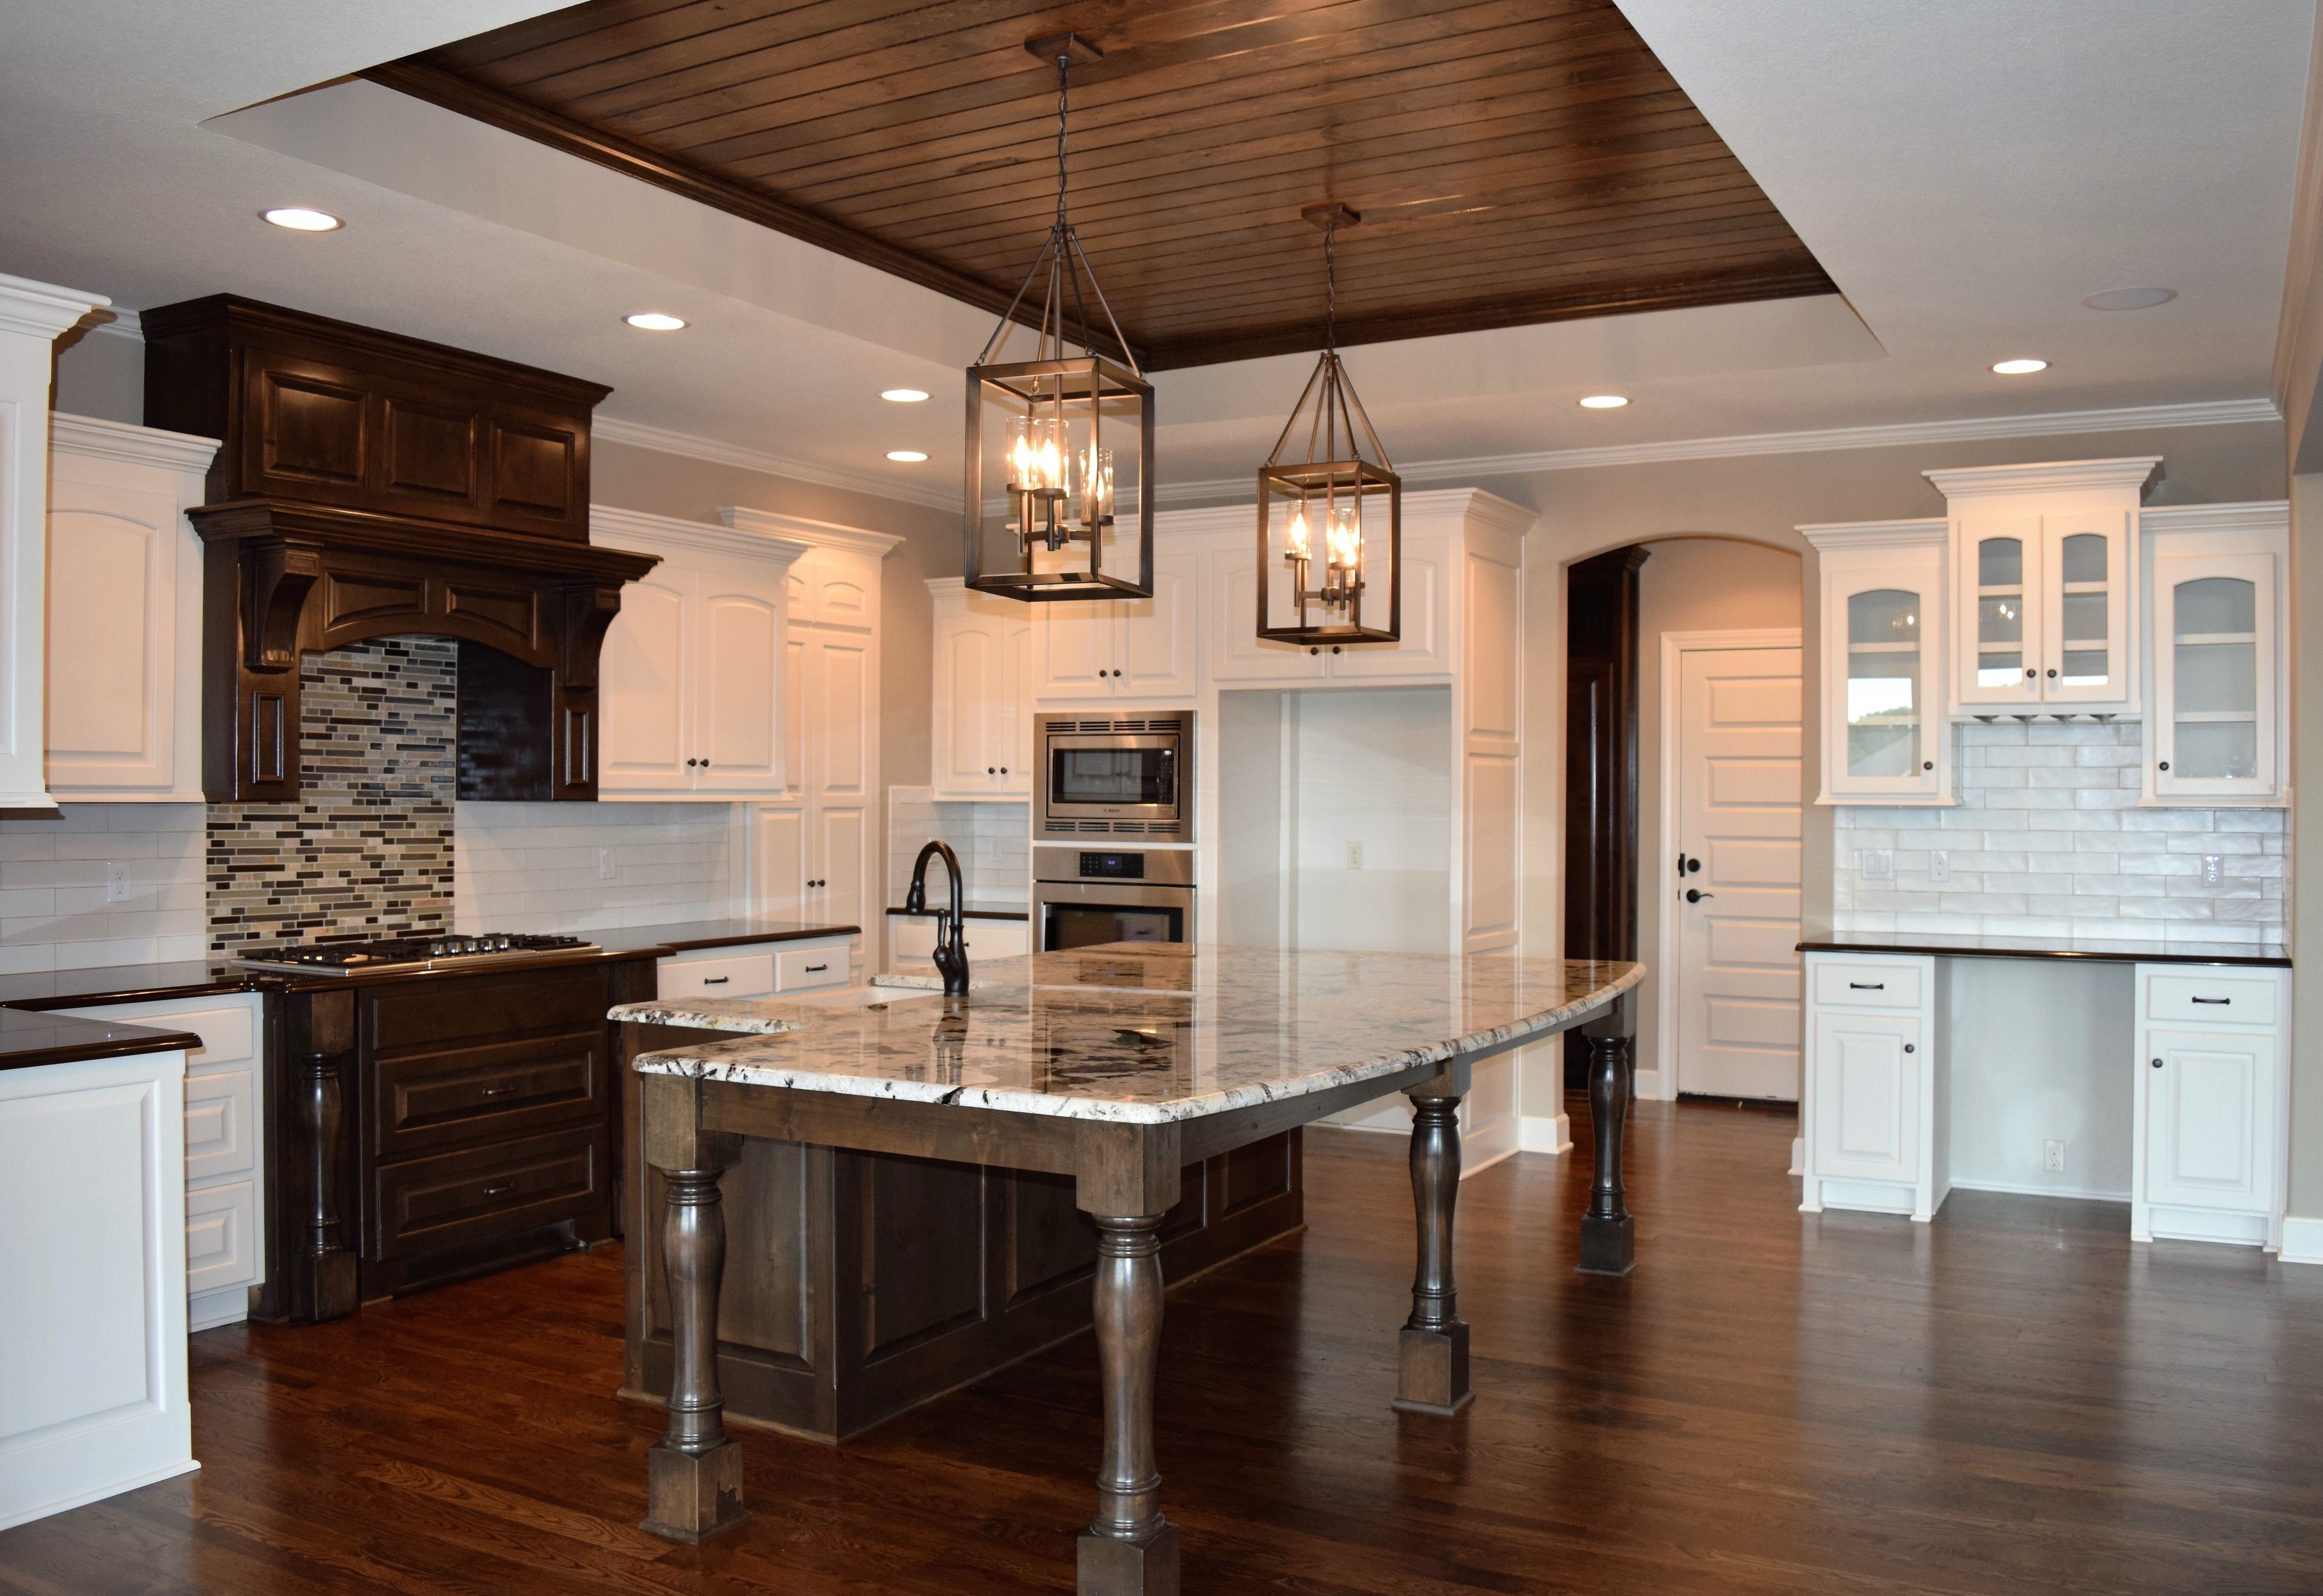 lantern kitchen island lighting. Large Granite Island, White Cabinets, Wood Ceiling Accent, Two Toned Lantern Kitchen Island Lighting